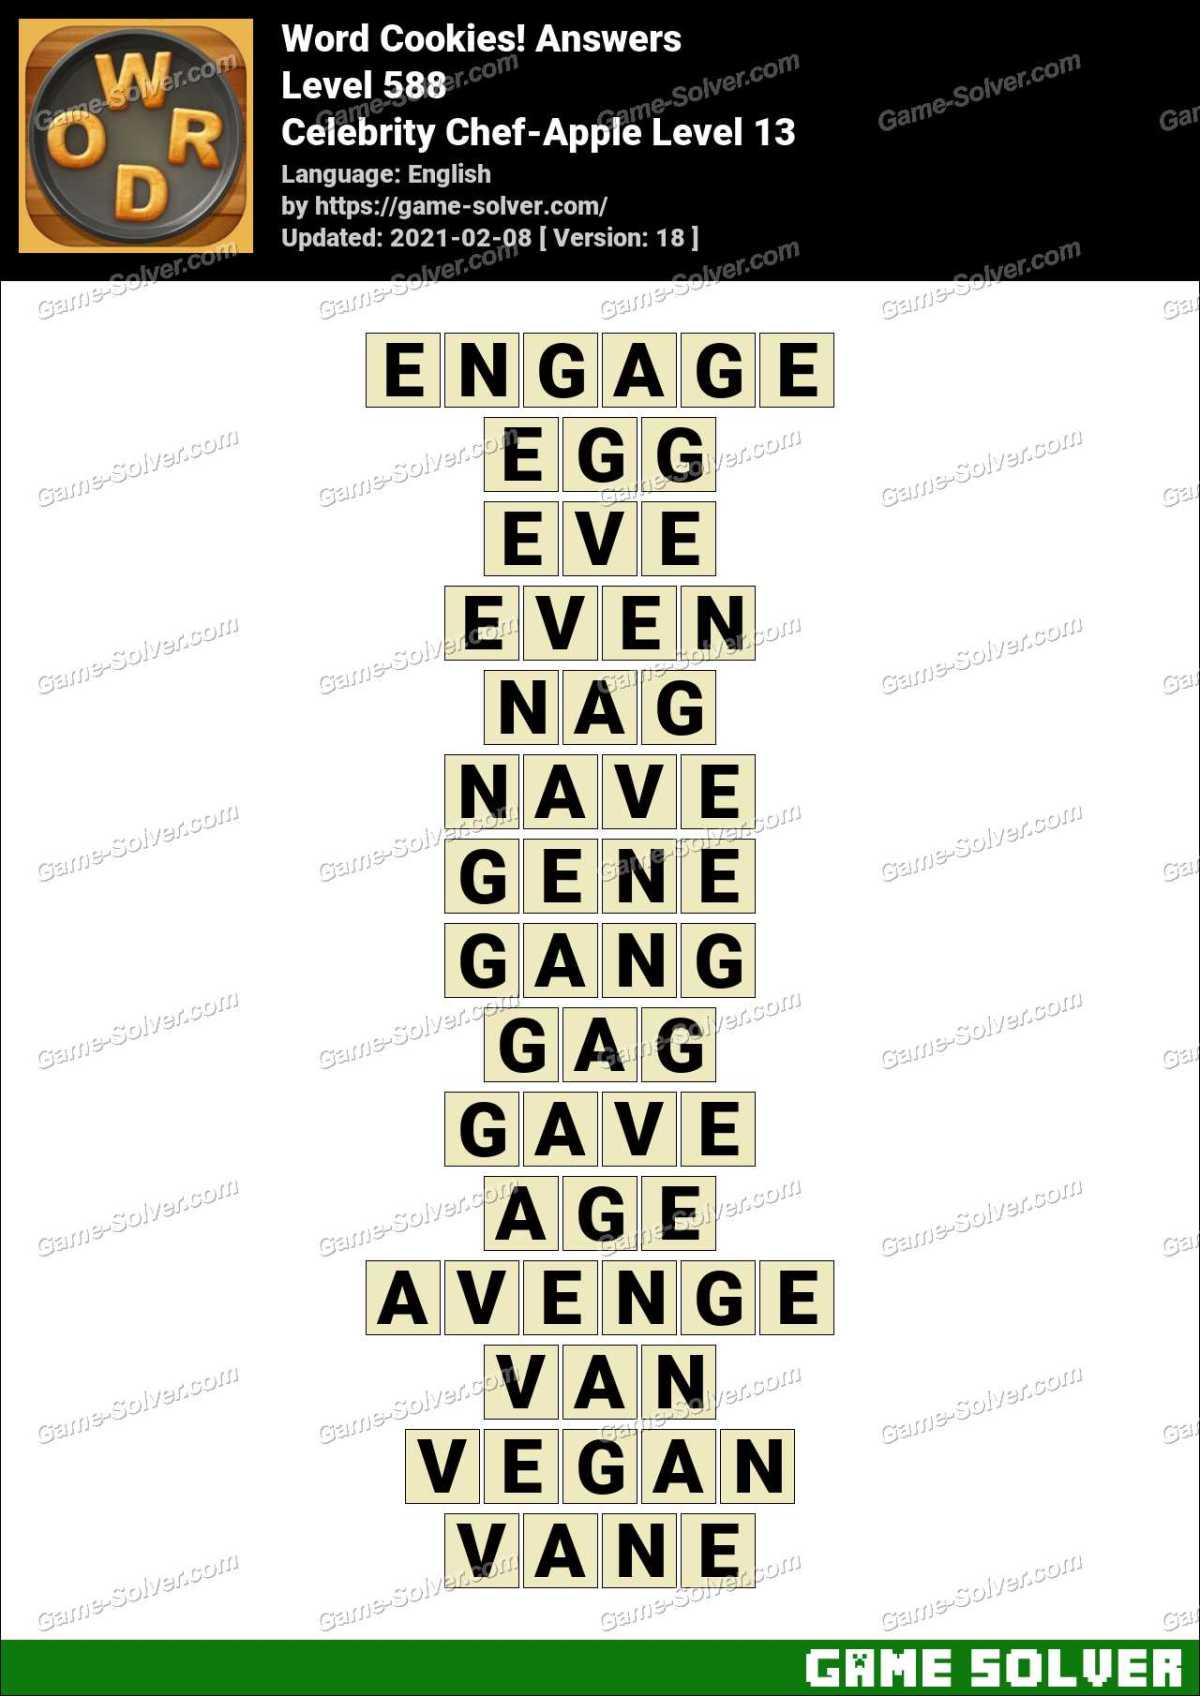 Word Cookies Celebrity Chef-Apple Level 13 Answers